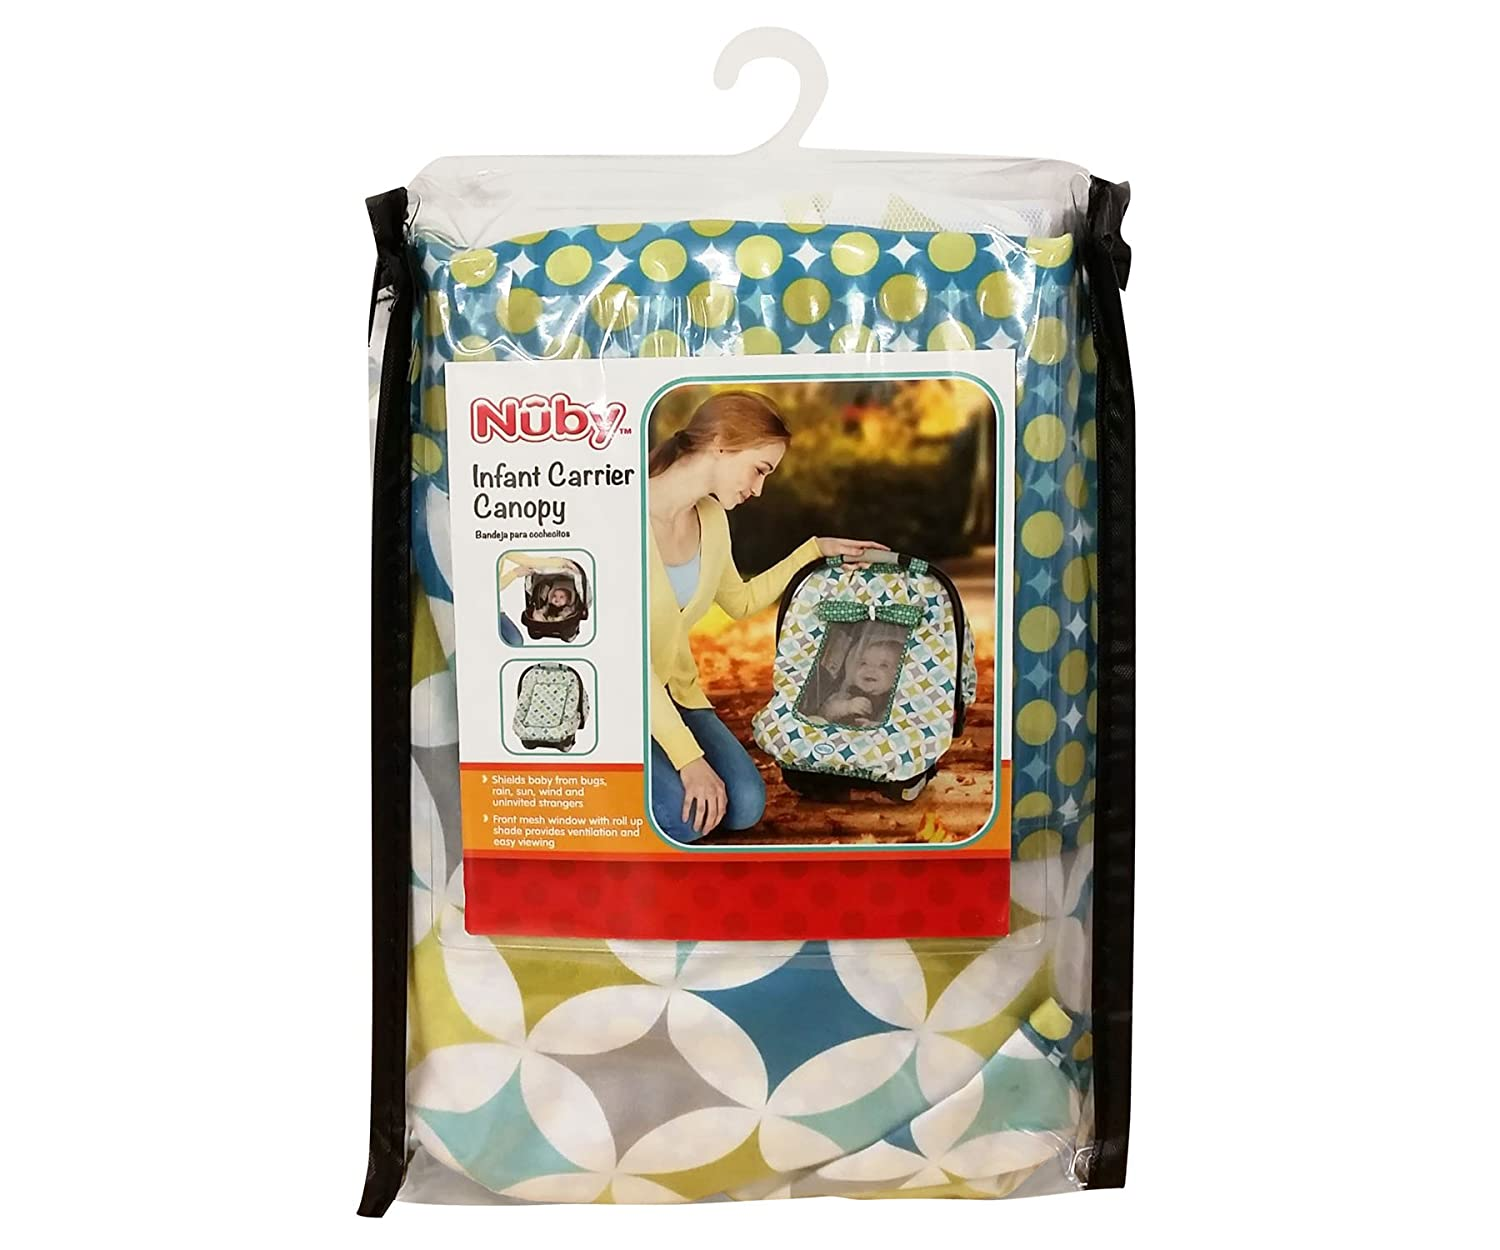 sc 1 st  Amazon.com & Amazon.com: Nuby Infant Carrier Canopy: Baby